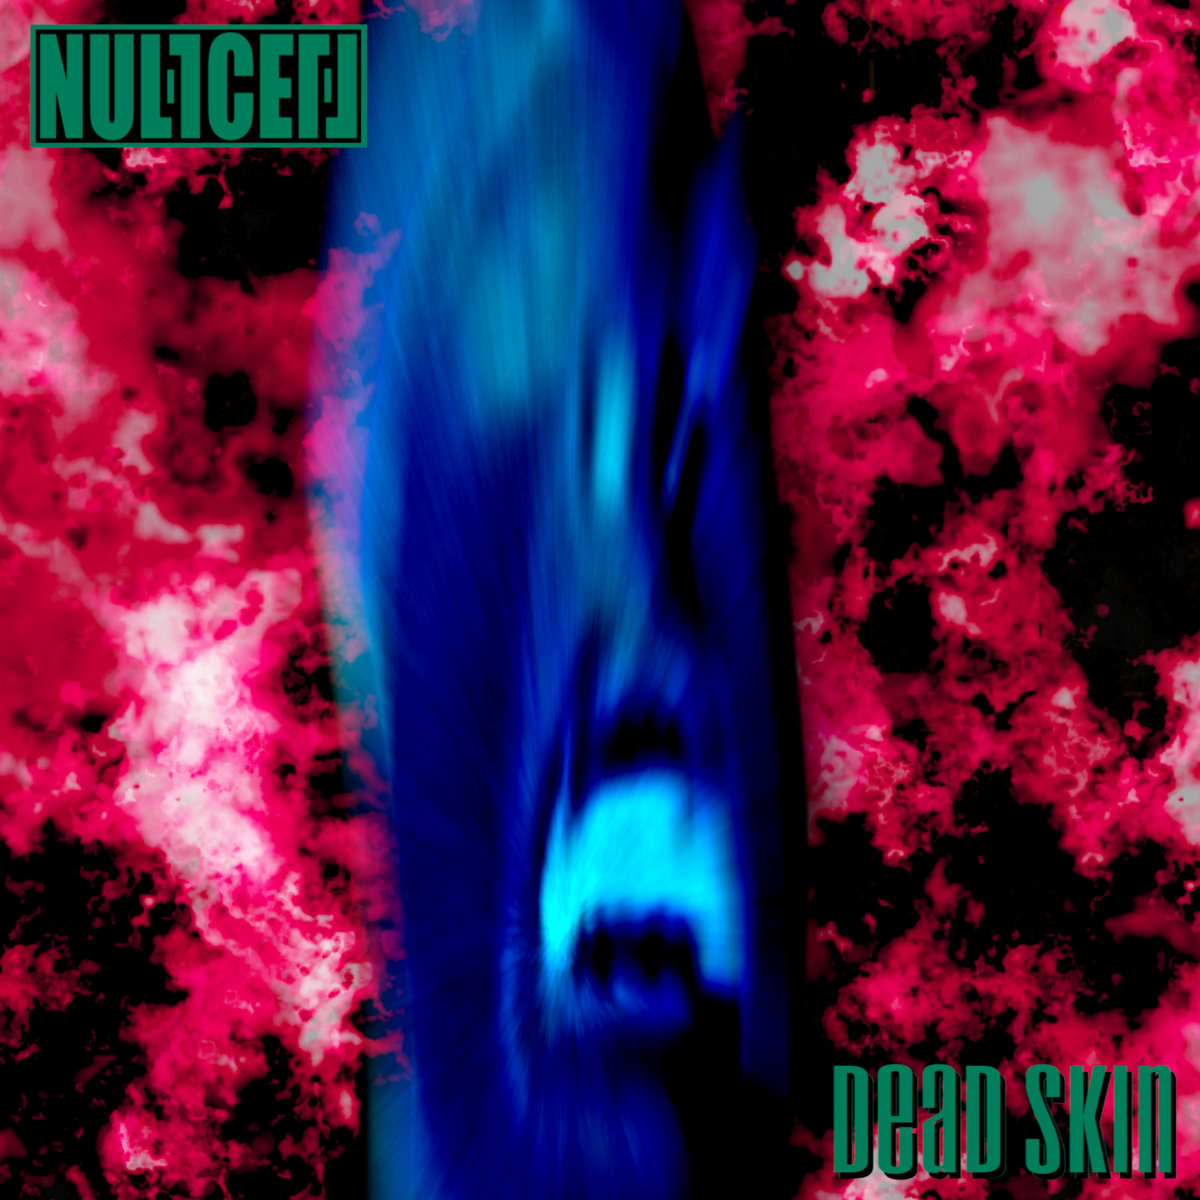 Dead Skin (Single) by Null Cell